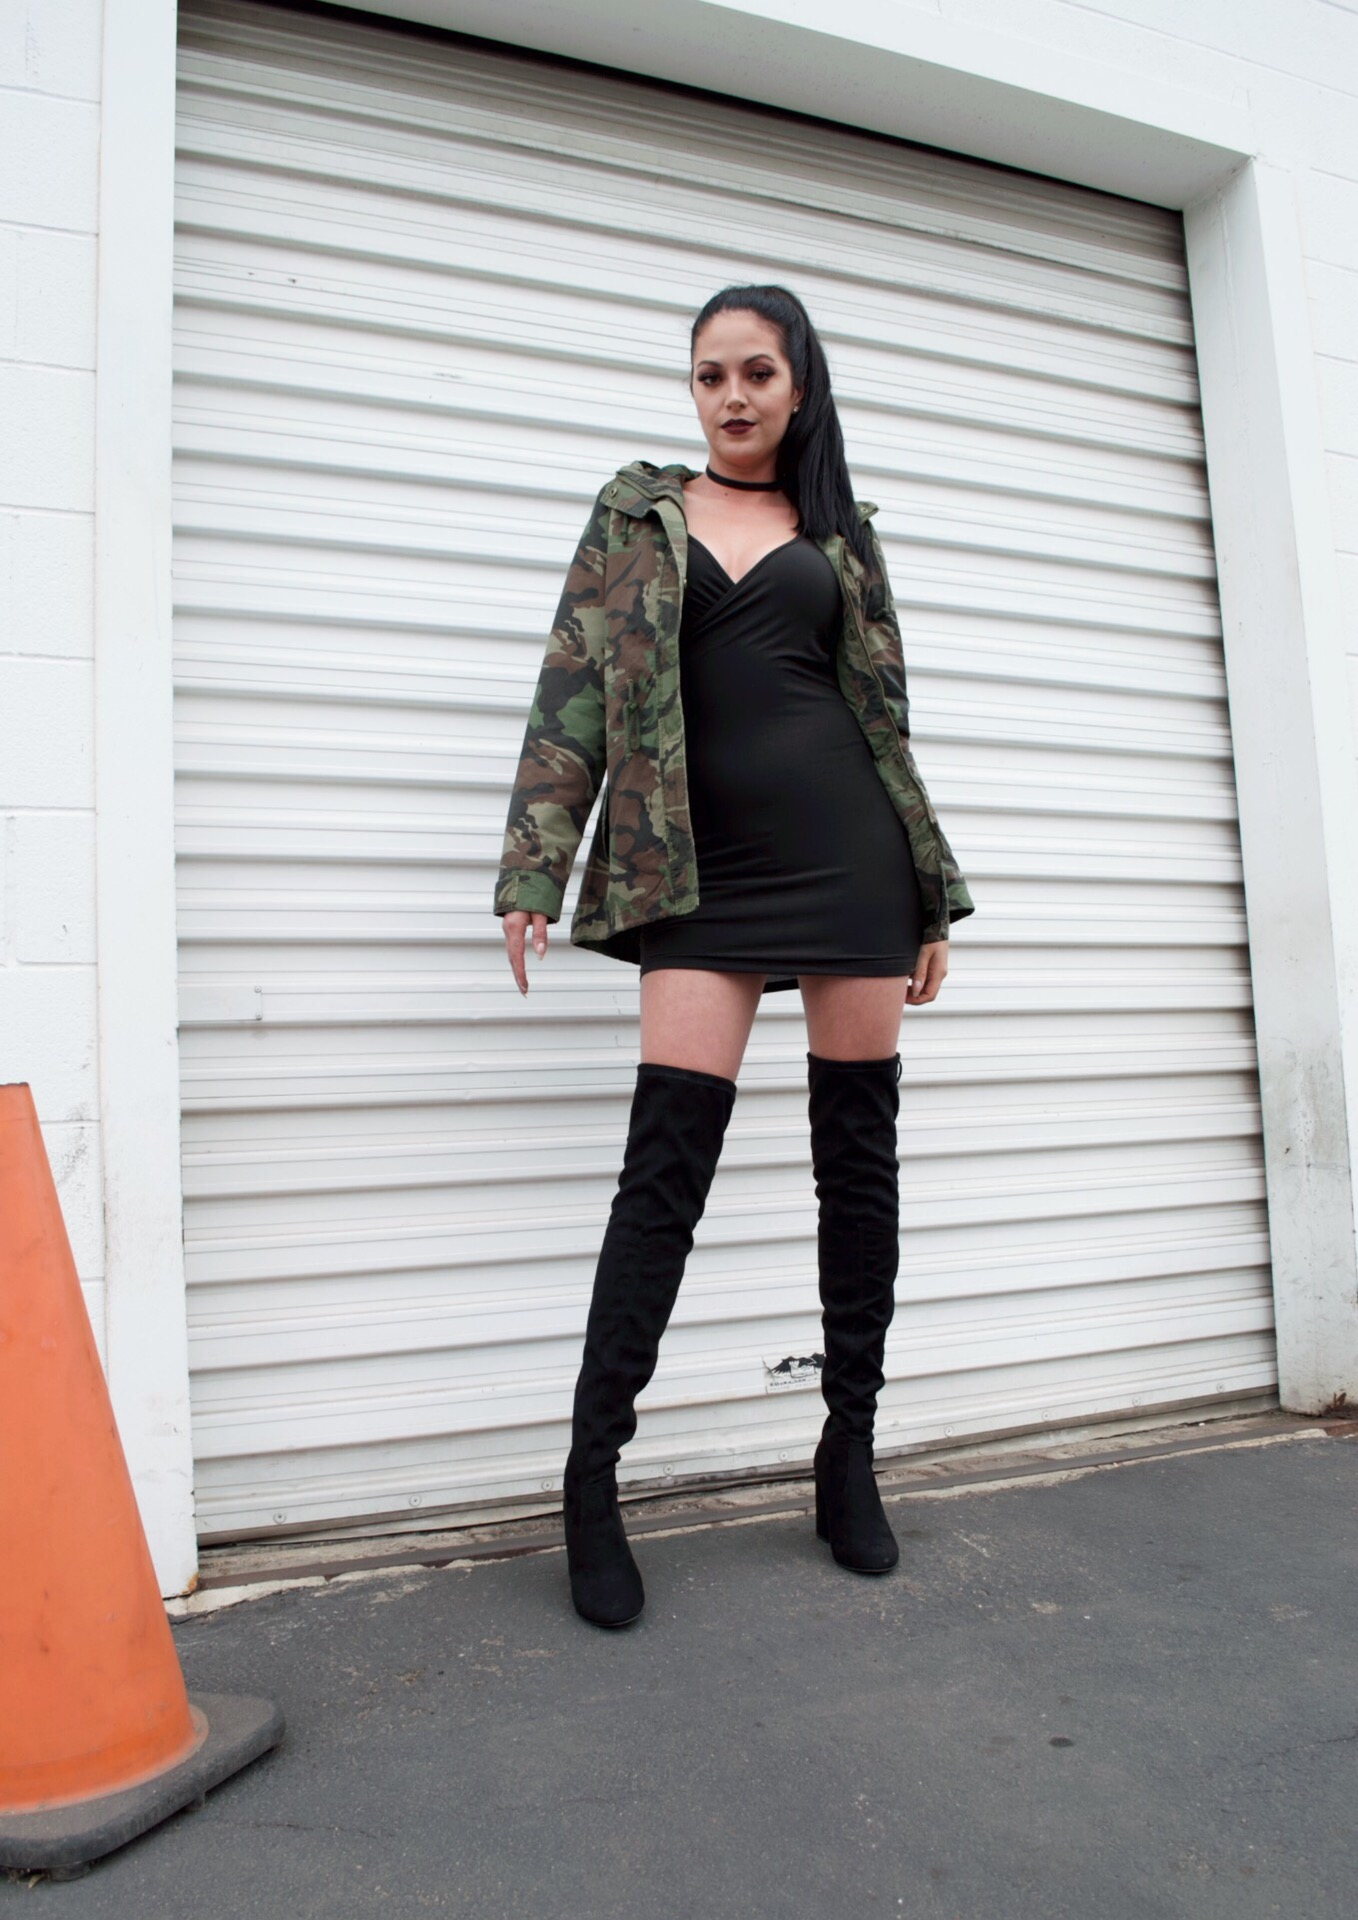 Camo is the New Neutral